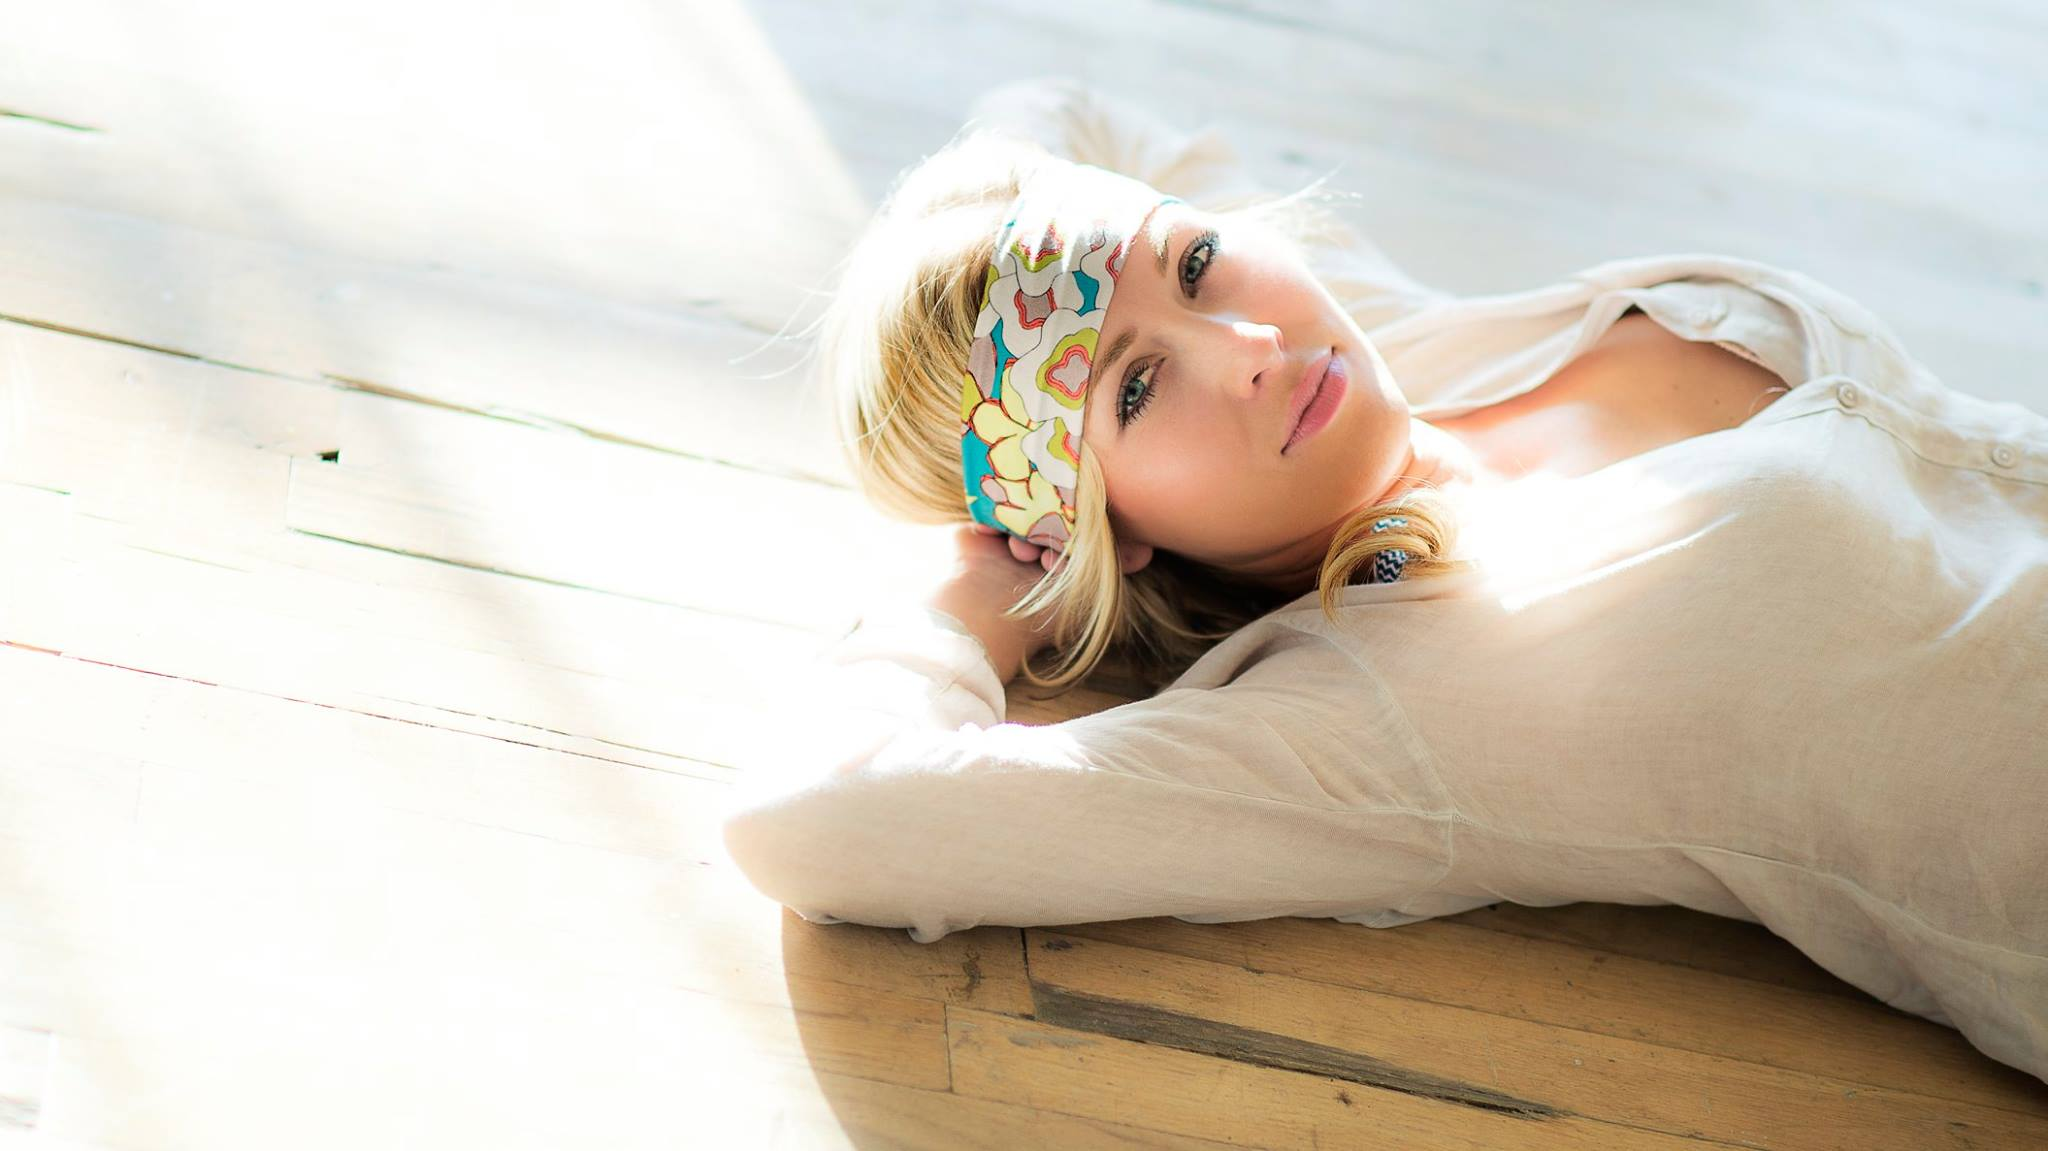 Make Use Of The Stylish And Trendy Headband To Obtain Special Look